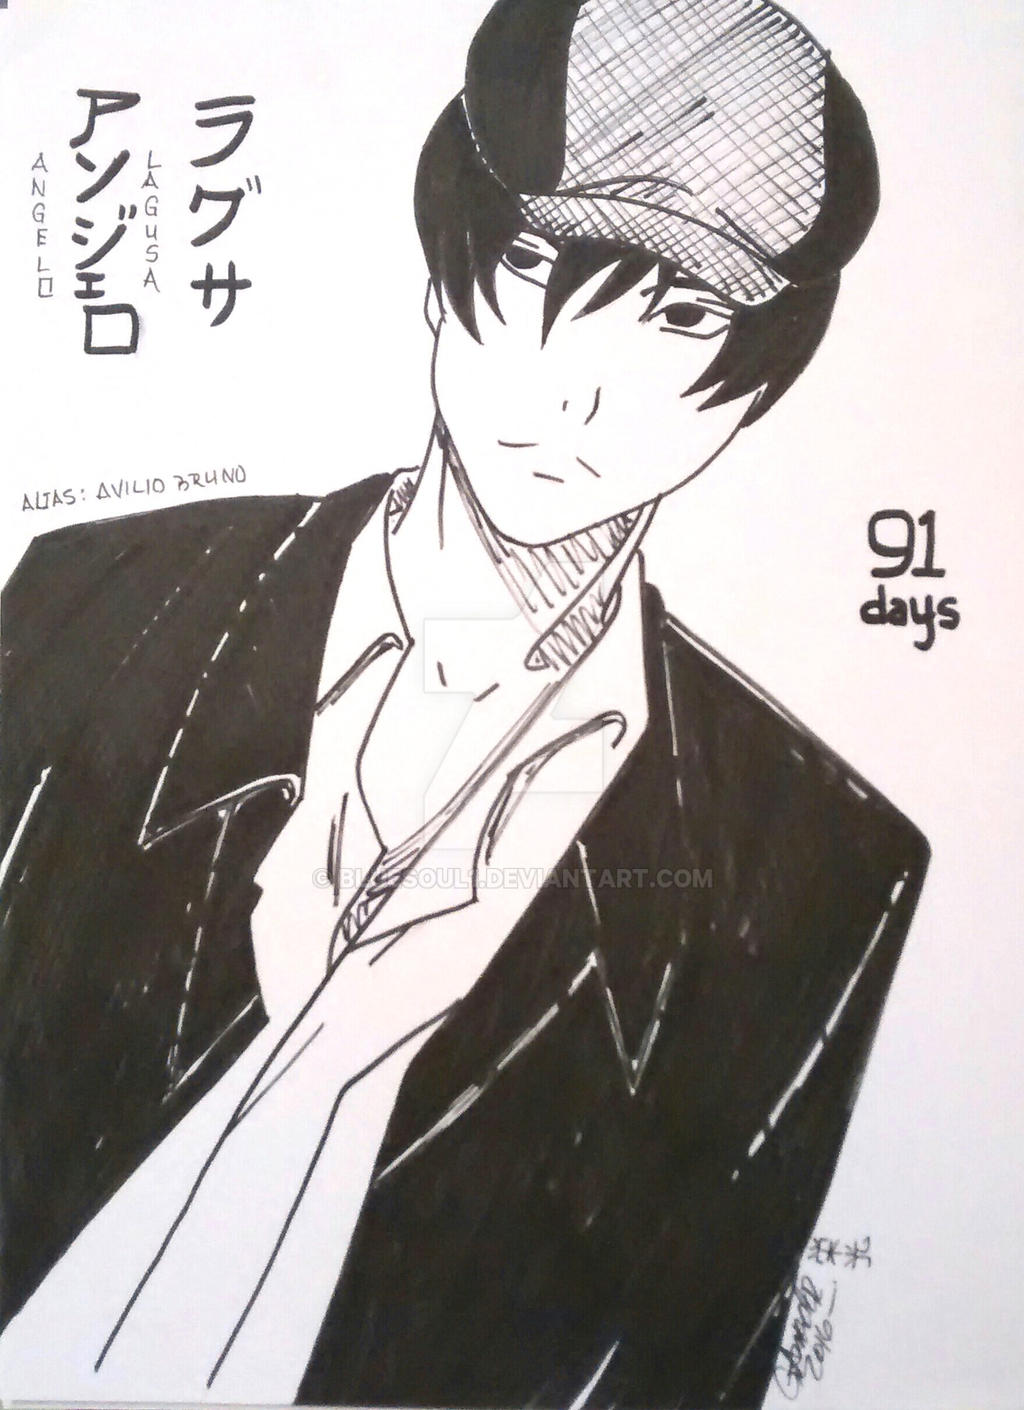 LAGUSA ANGELO AVILIO BRUNO From 91 Days By Bluesoul1